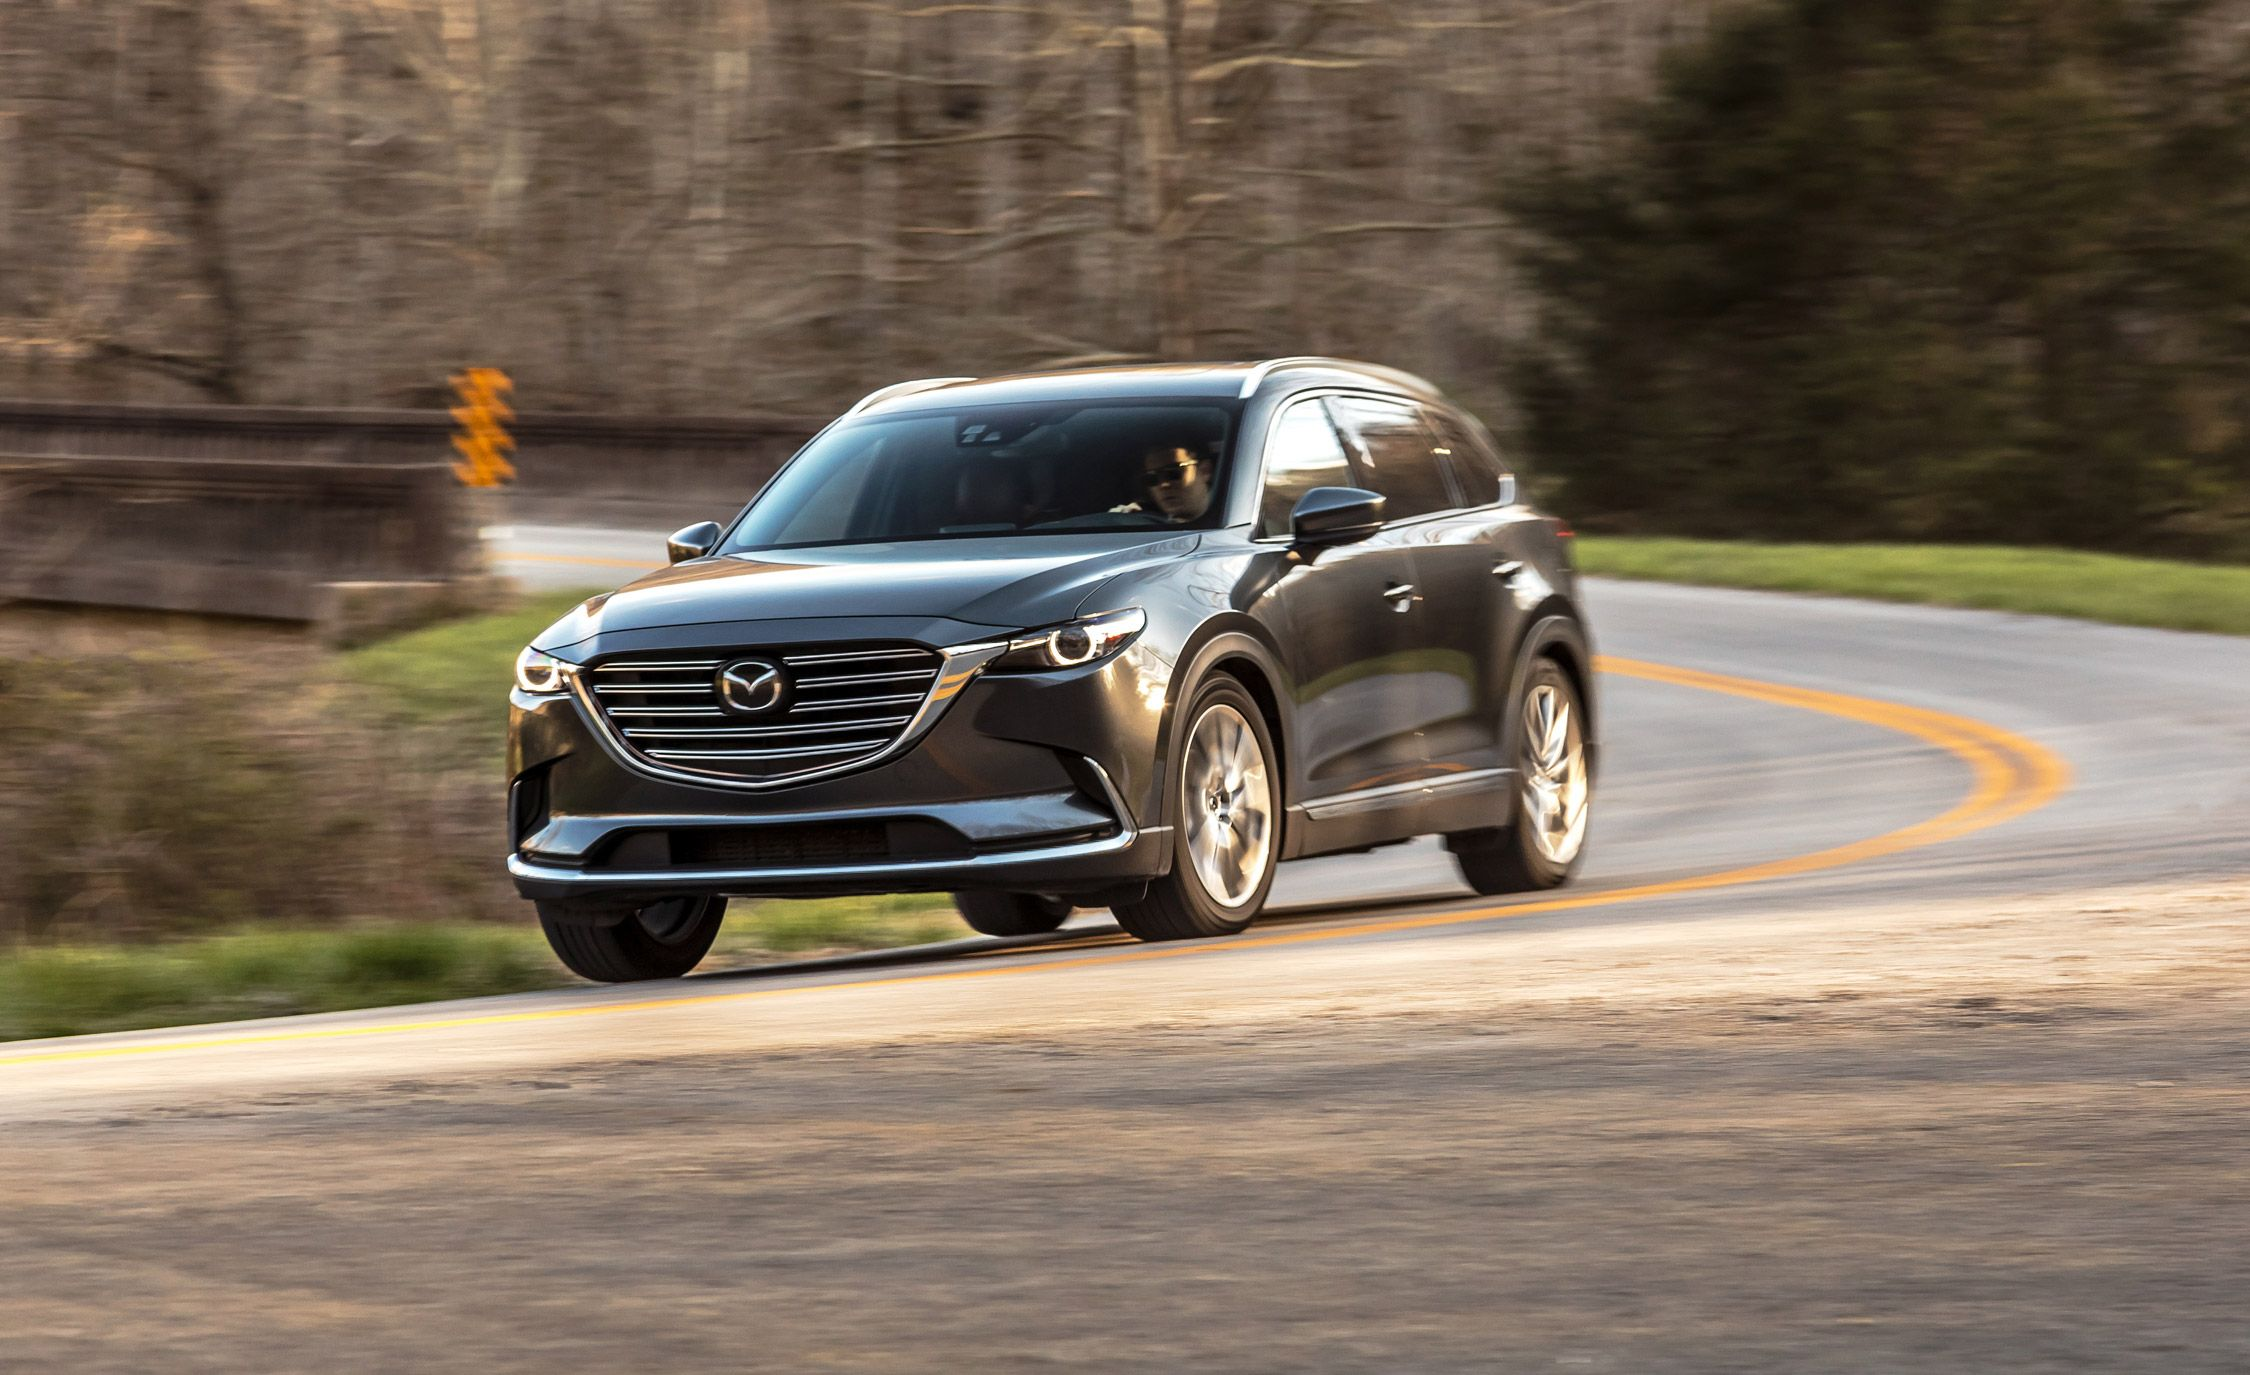 medium resolution of 2016 mazda cx 9 long term test wrap up review car and driverimage st car and driver fuel filter replacement